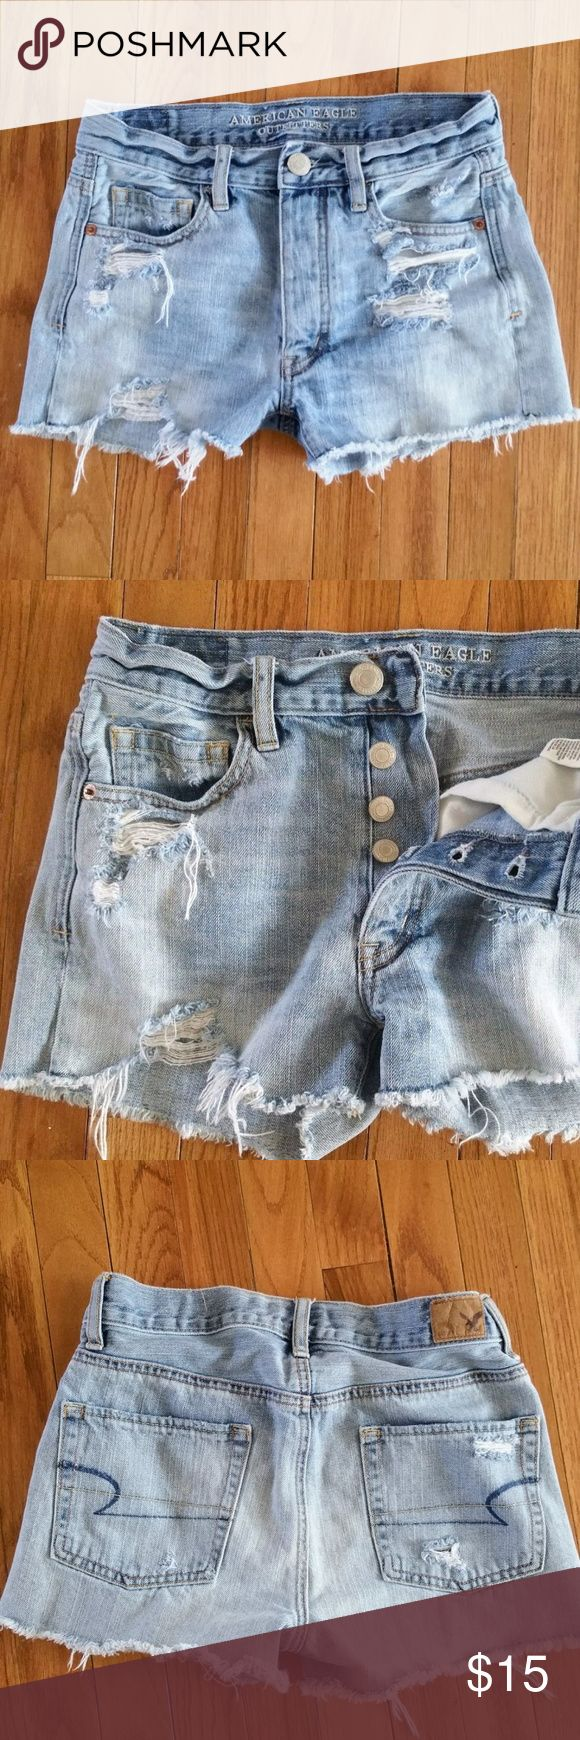 """American Eagle Cutoff Jean Shorts Distressed Denim American Eagle Jean Shorts Cut Off Button Fly Distressed Size 00     Women's Size: 00 ( See Measurements- Generous Fit )  Button Fly Cut Off Distressed Denim  Rise Measures Approx 9.5 """"  Inseam Measures Approx 2"""" Waist Measures Approx 14"""" Across Lying Flat  Smoke & Pet Free Home American Eagle Outfitters Shorts Jean Shorts"""